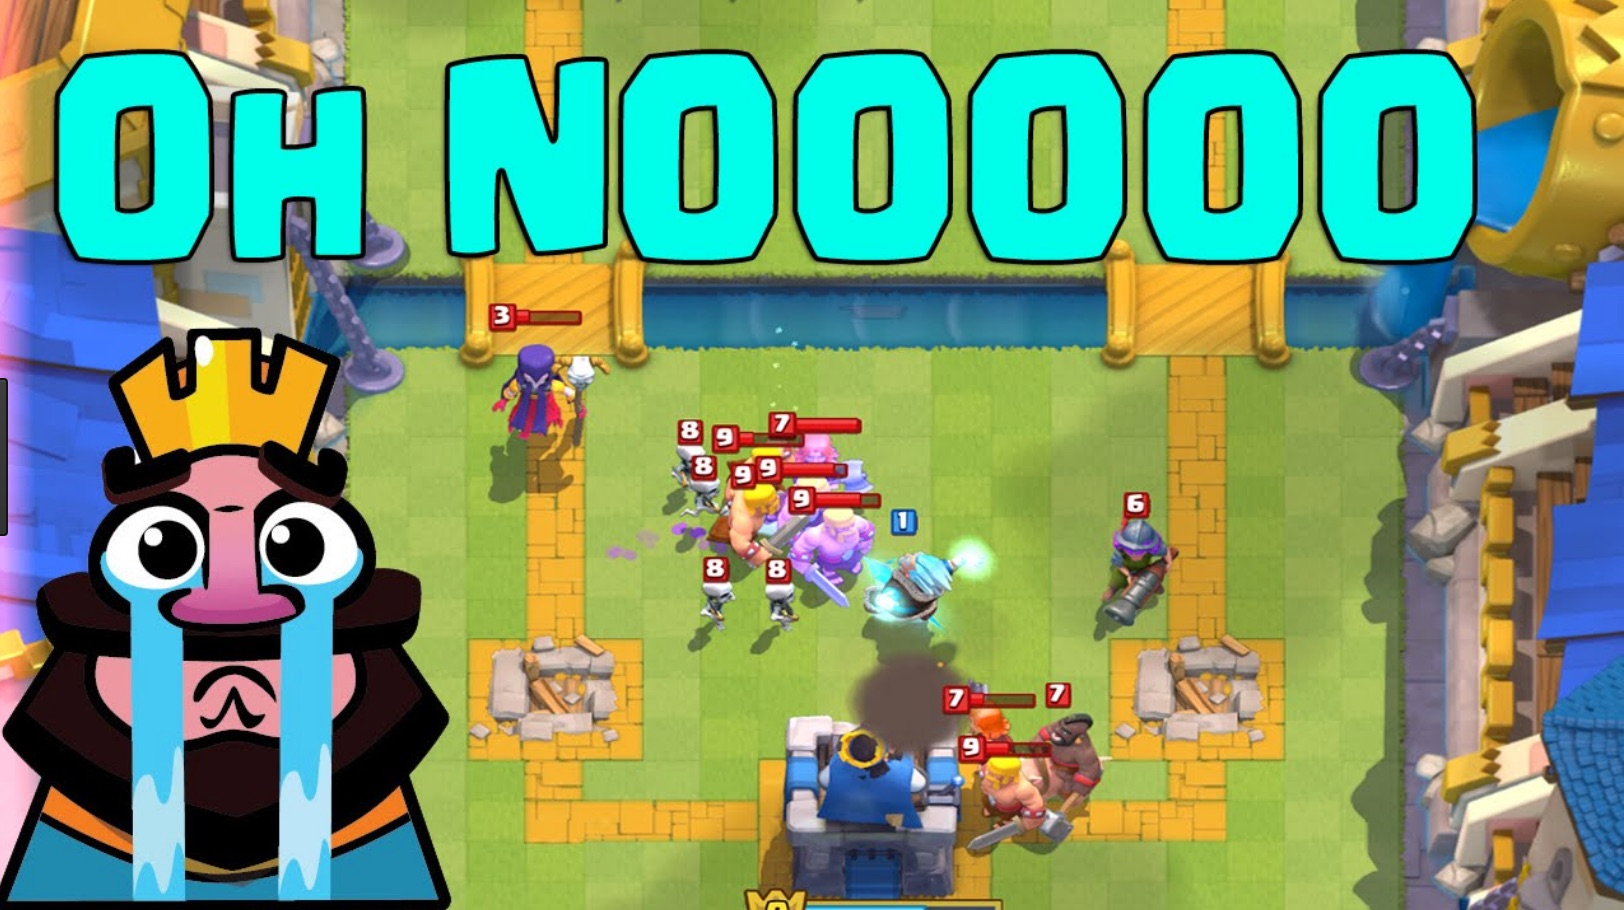 In Clash Royale, you'll lose a lot, sometimes to people who clearly have dumped $100s more than you have into the game. And that's okay, because they'll move up out of your league so you don't have to play them anymore.